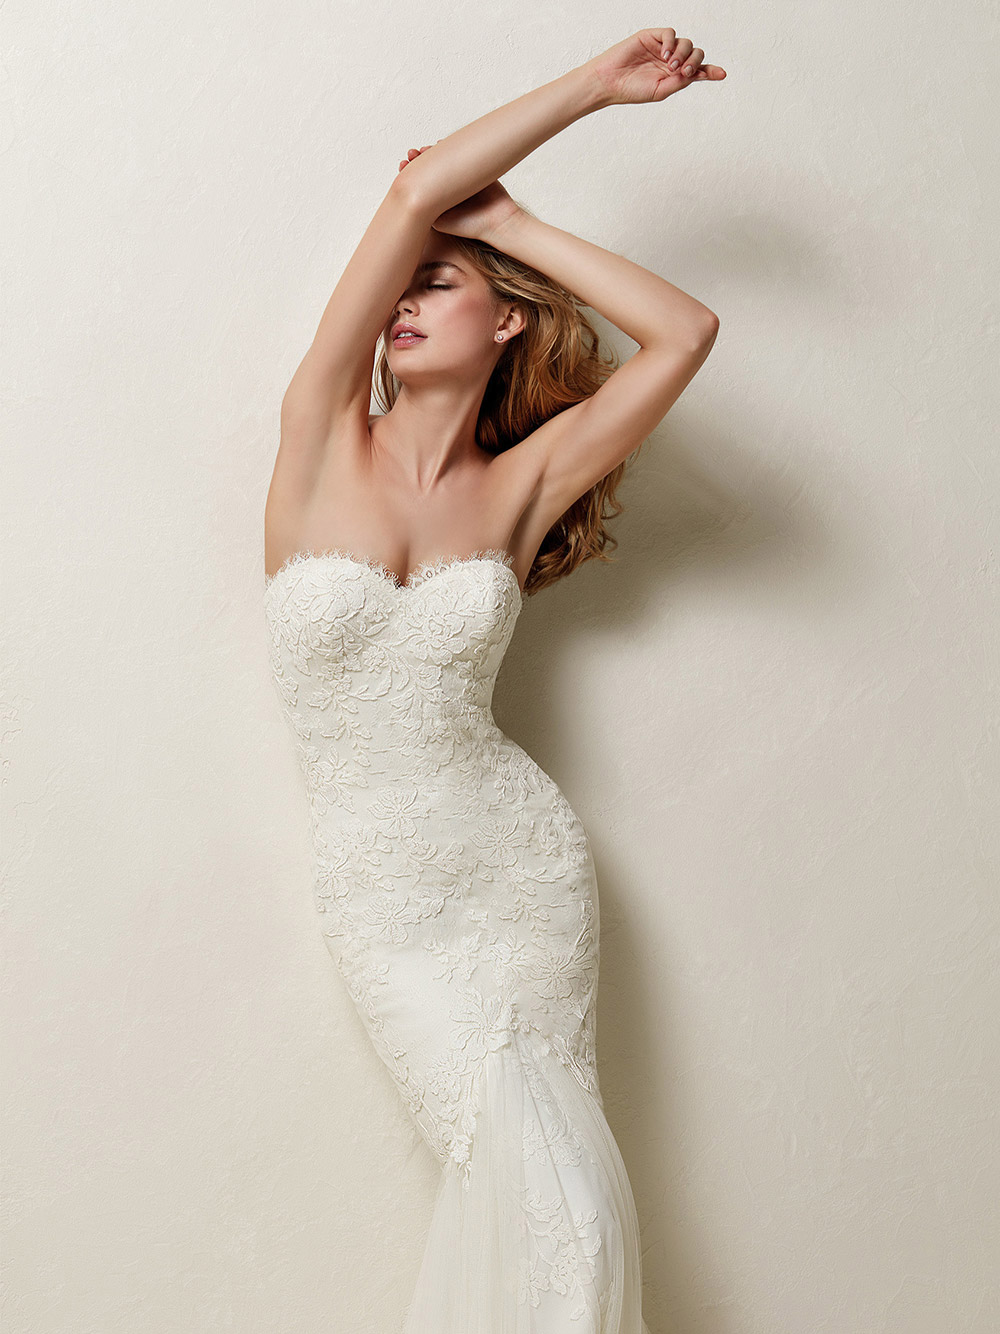 Drimea - Pronovias 2018 Bridal Collection. www.theweddingnotebook.com